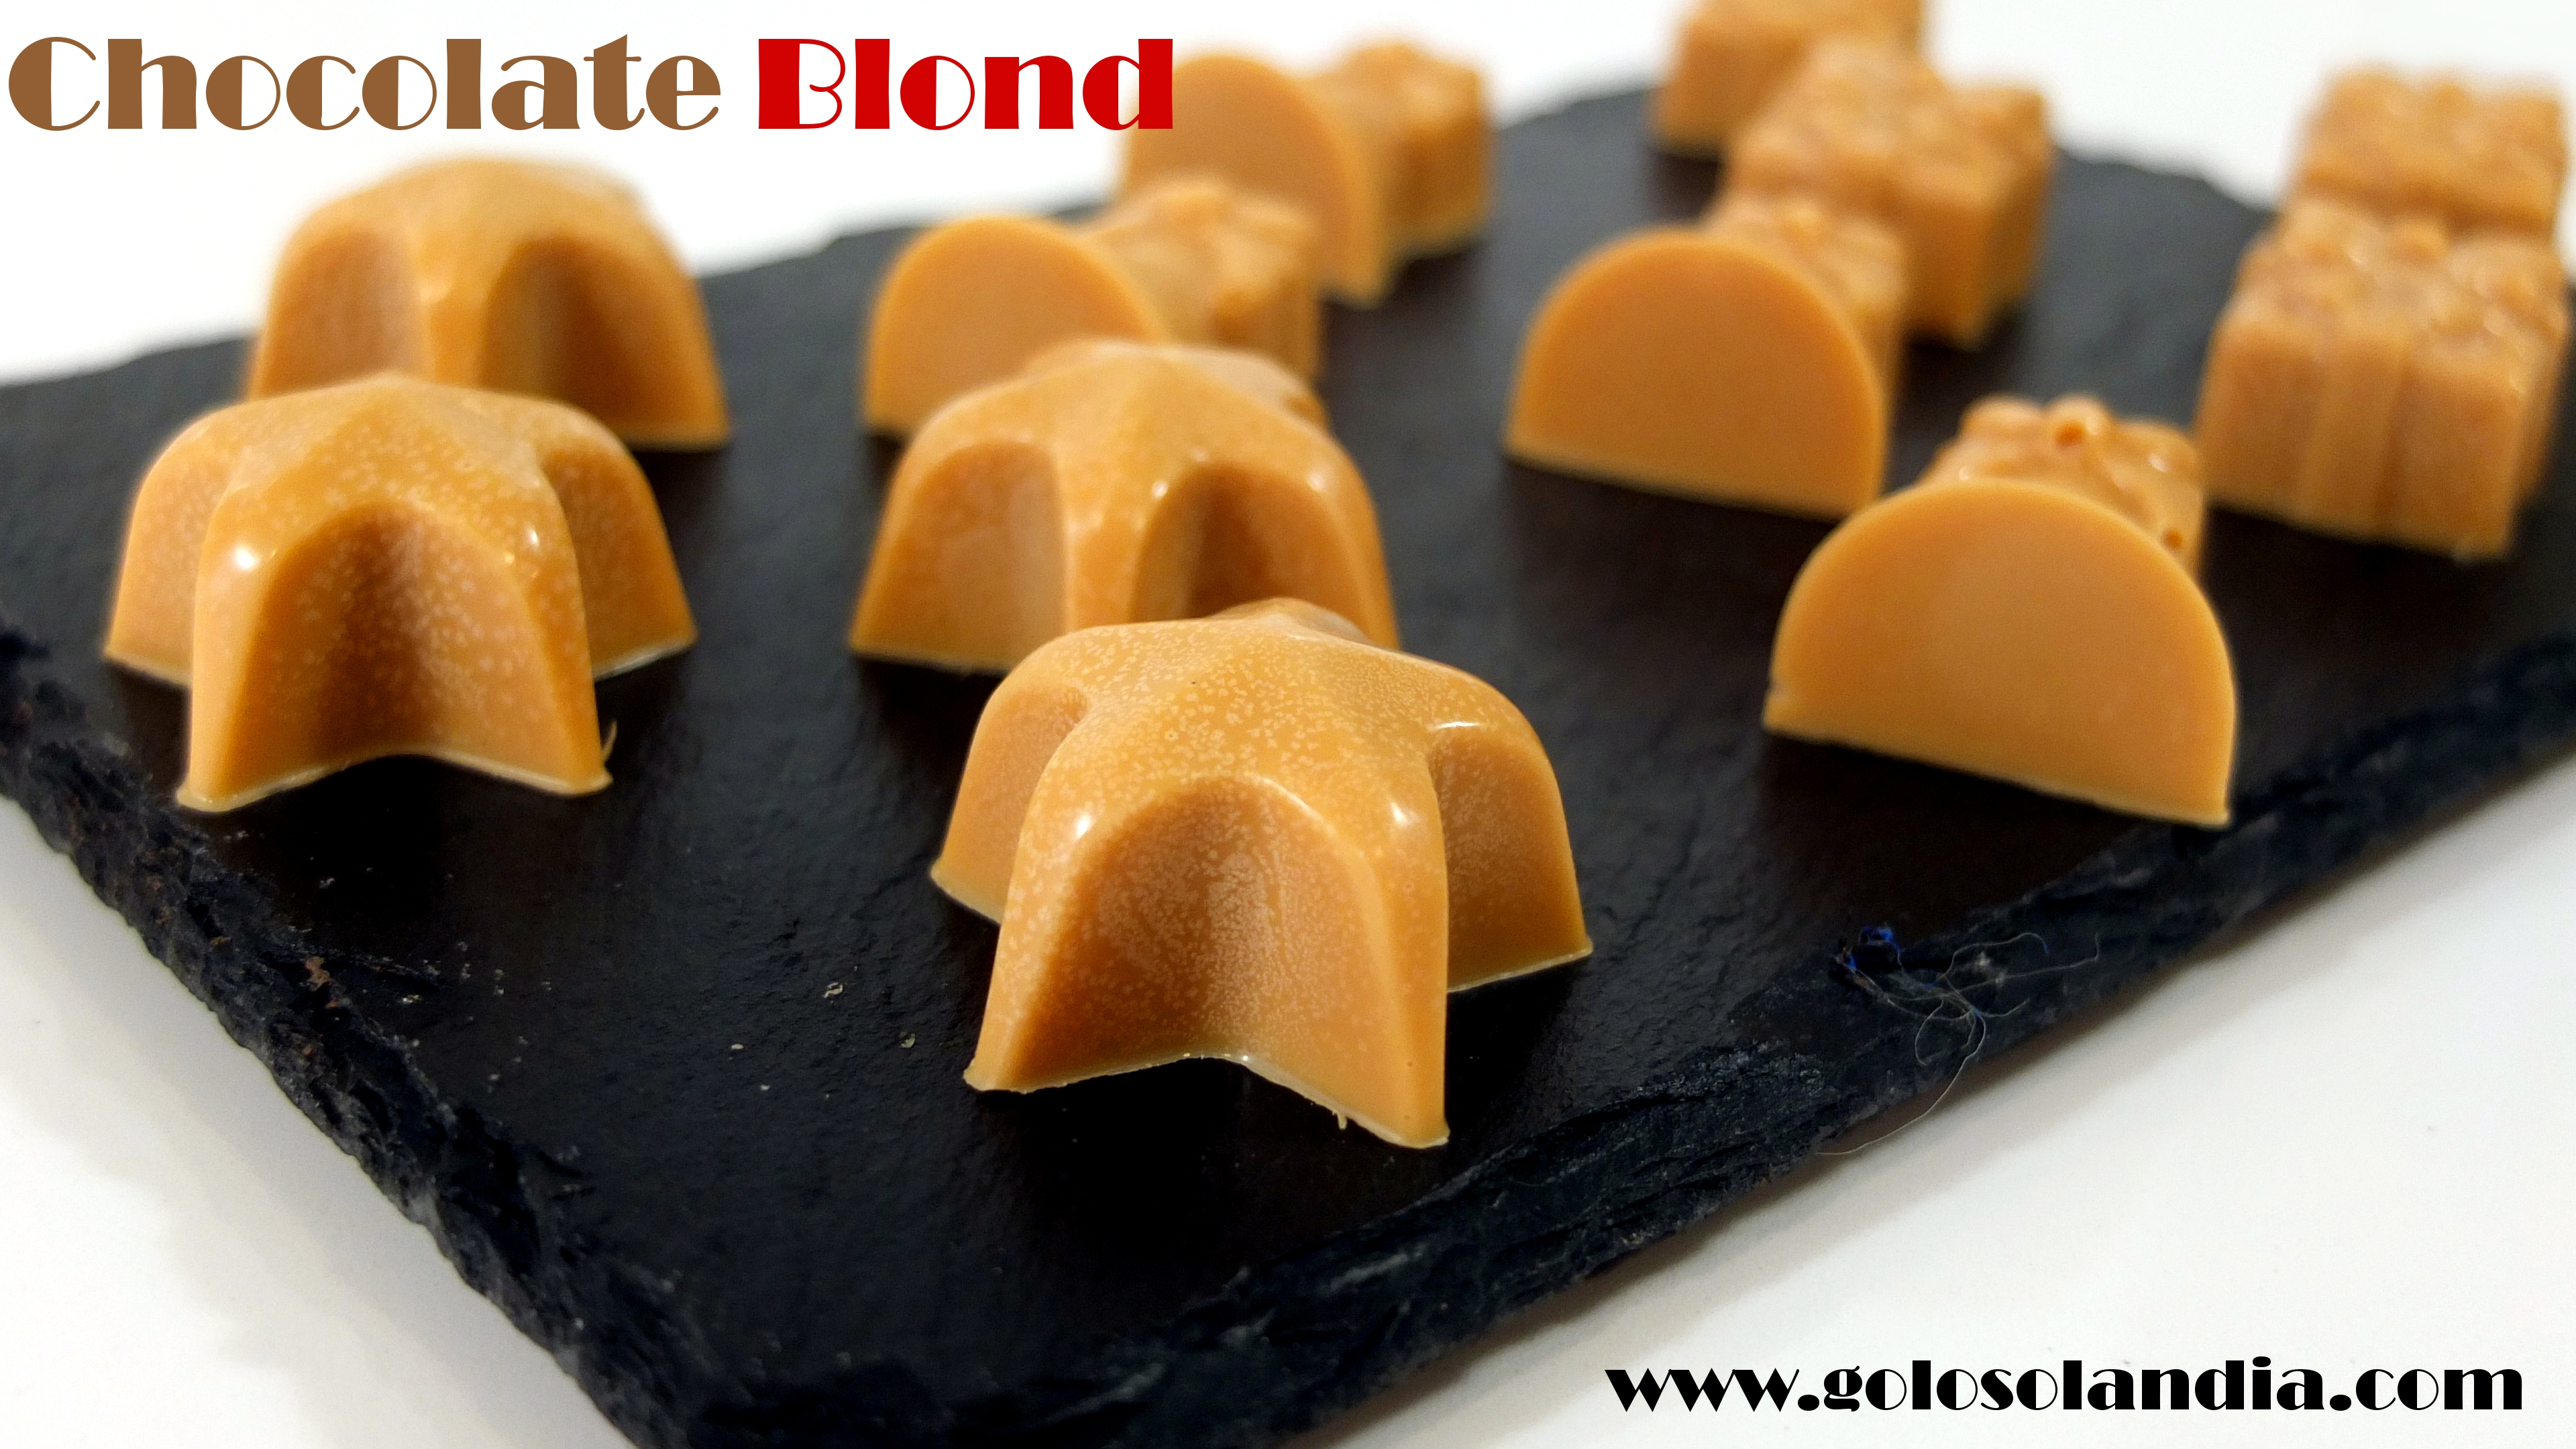 Chocolate blond